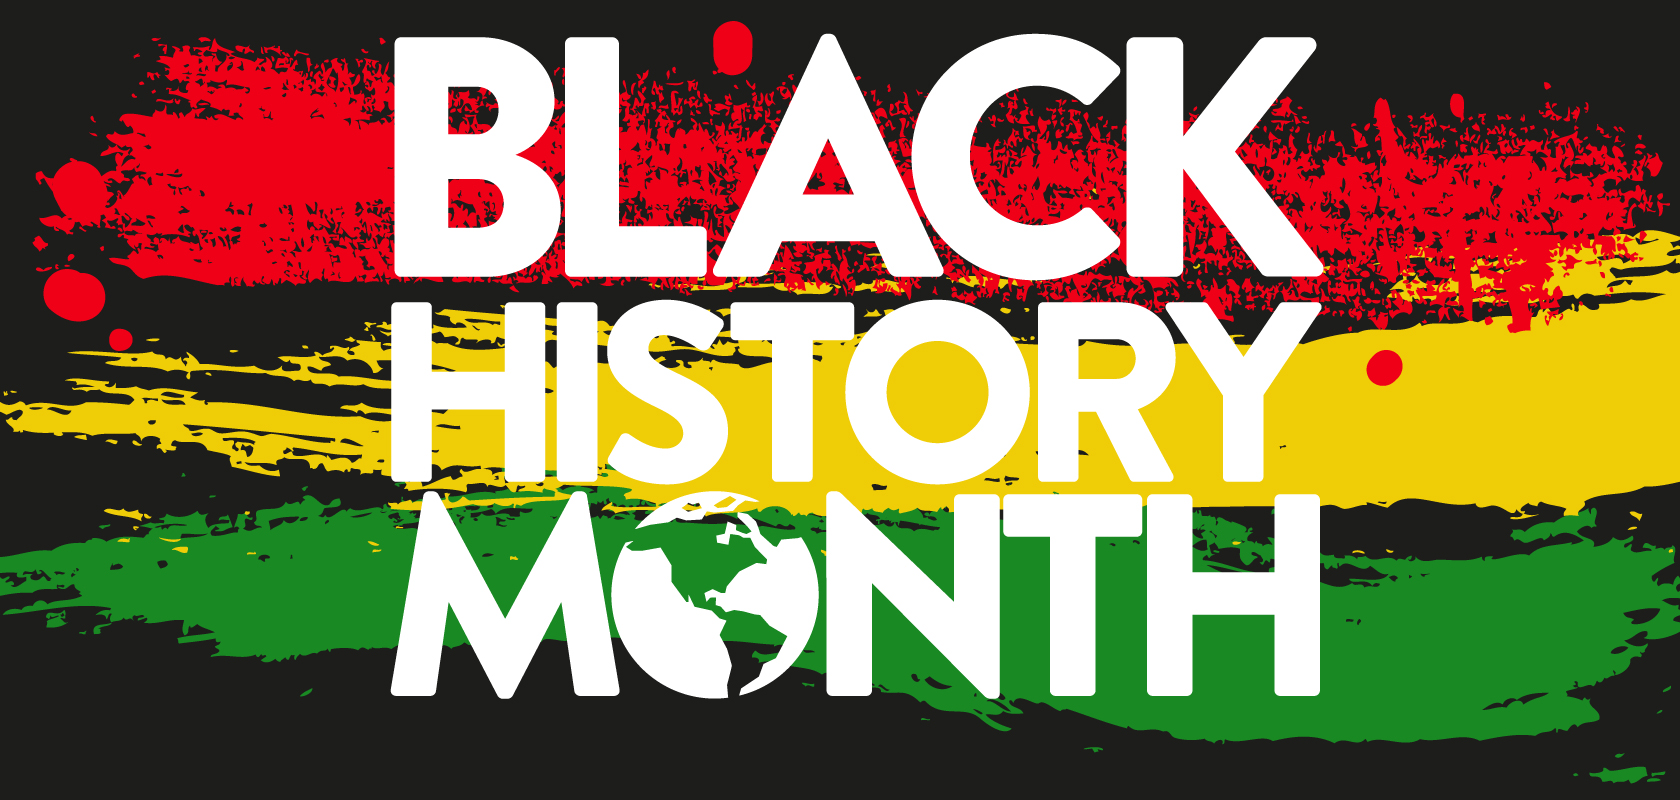 Black History Month with black background, red, green, and yellow colors.